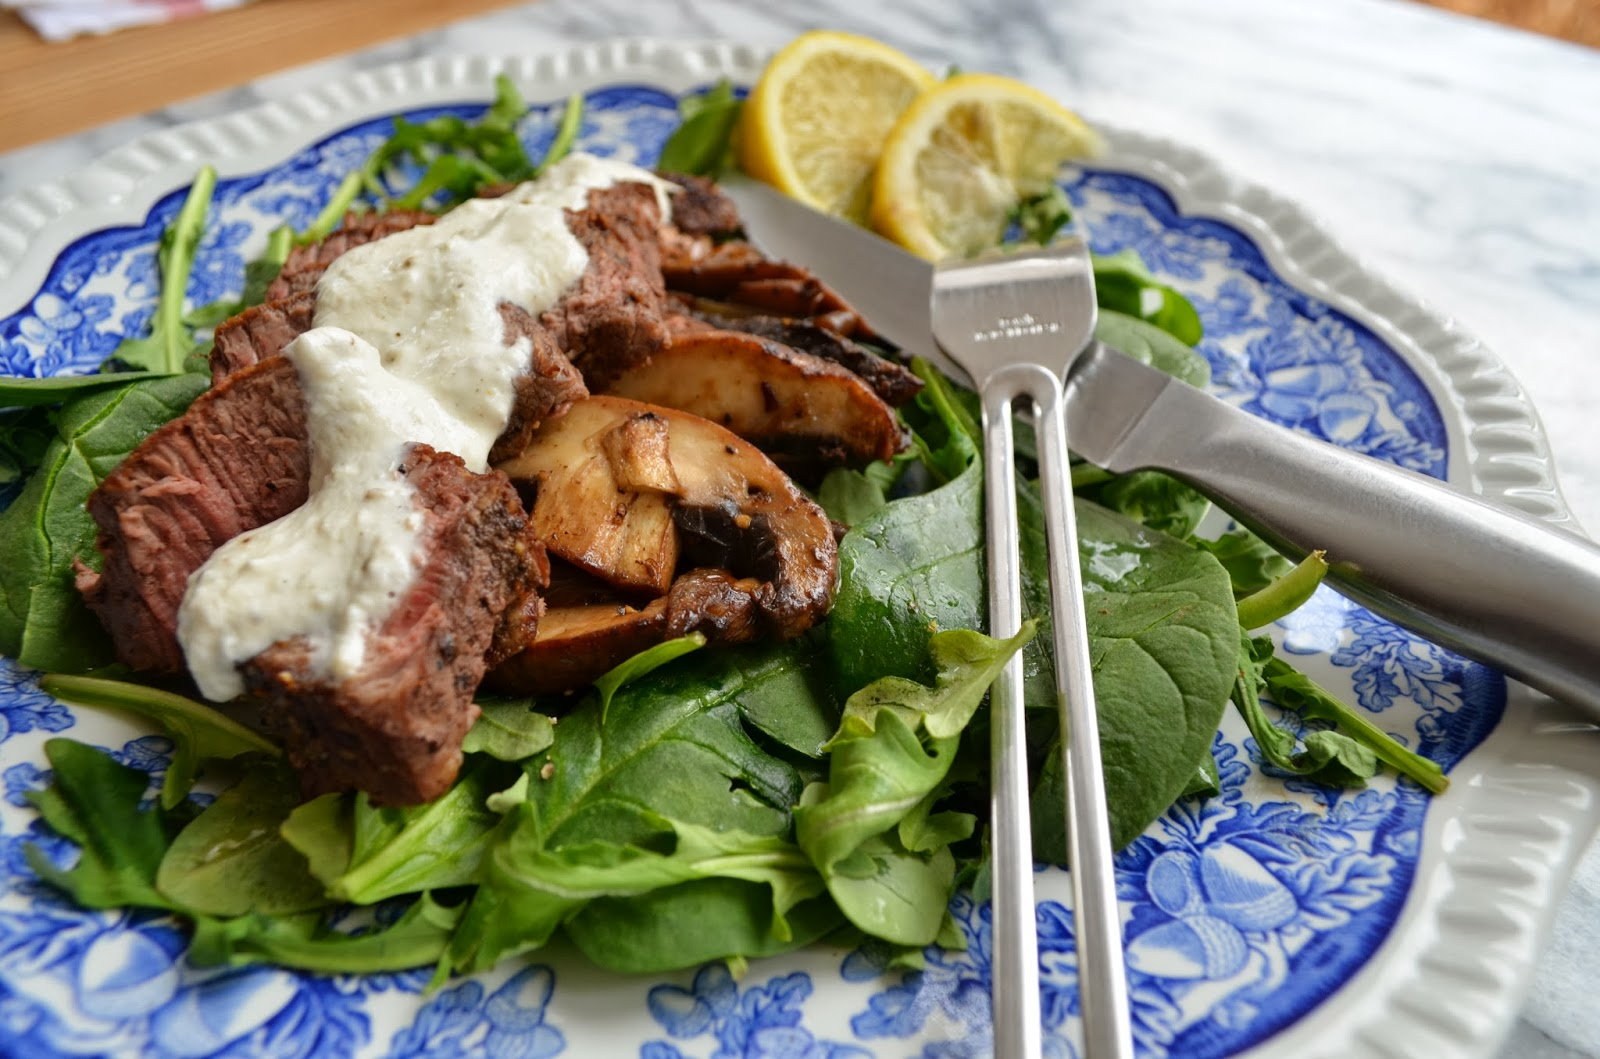 Filet Mignon and Portabella over Fresh Greens - Smell of Rosemary.